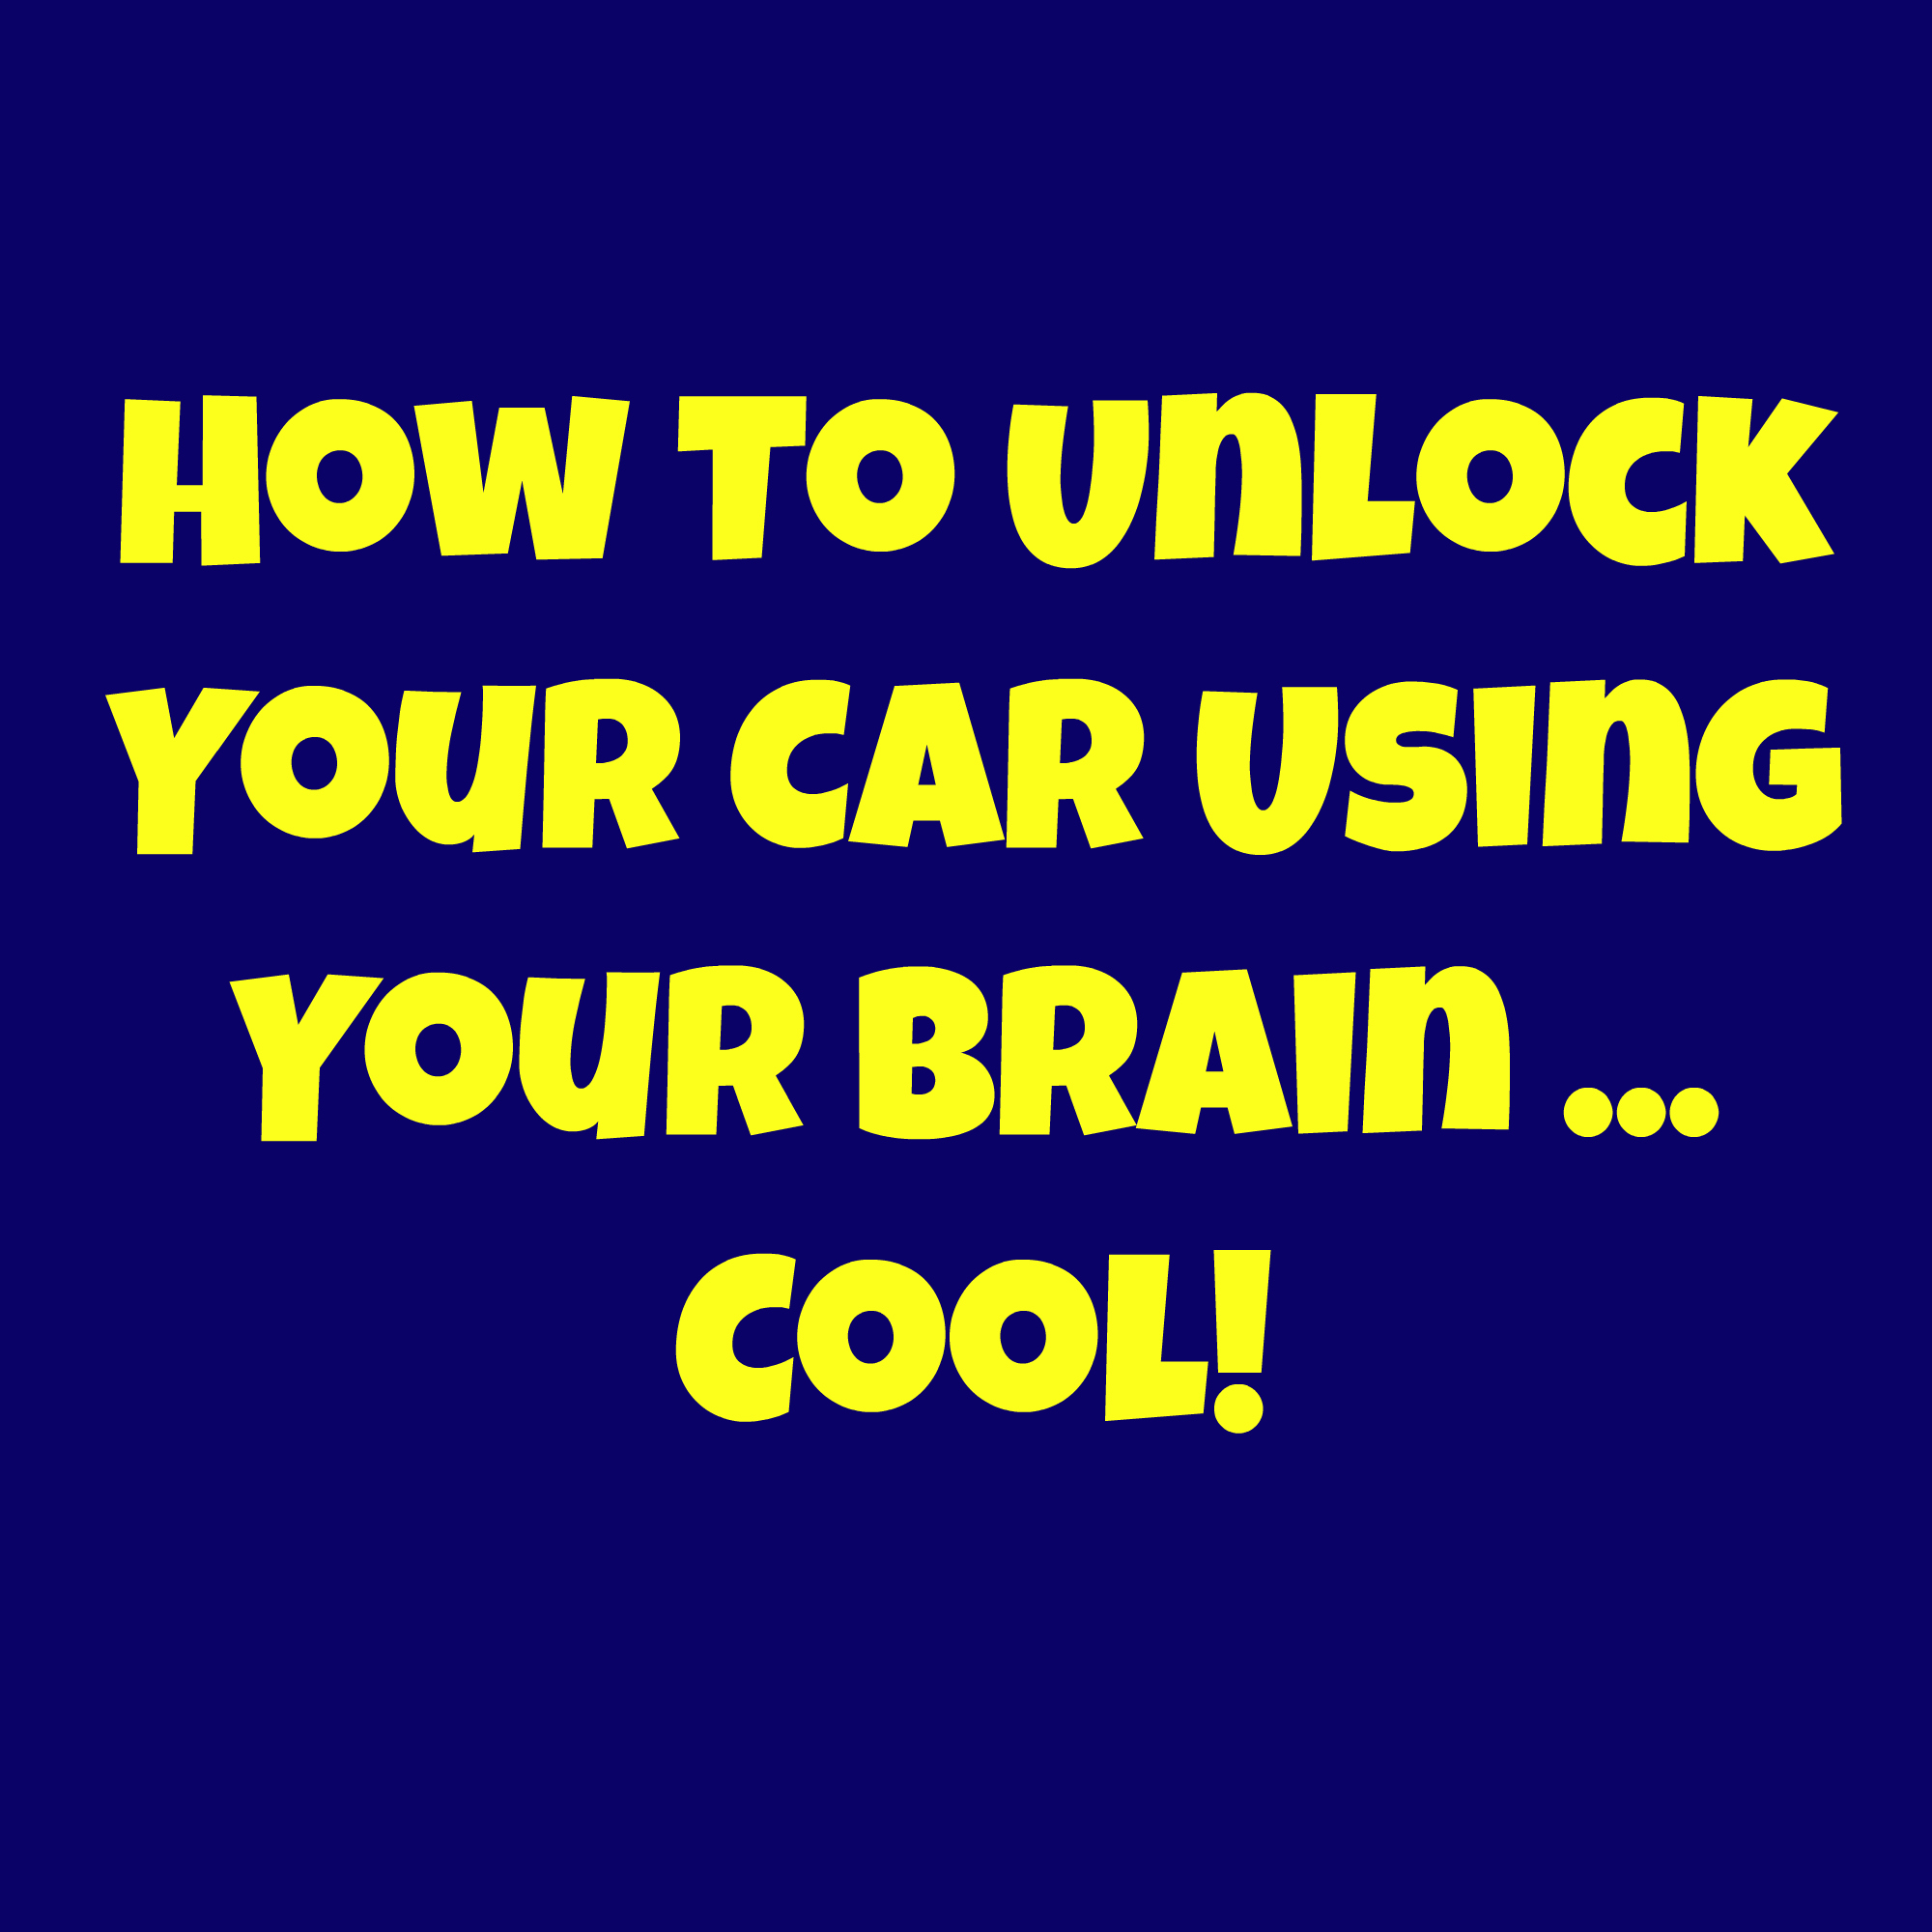 how to unlock your car using your brain cool blogs kelo newstalk 1320 am 107 9 fm. Black Bedroom Furniture Sets. Home Design Ideas